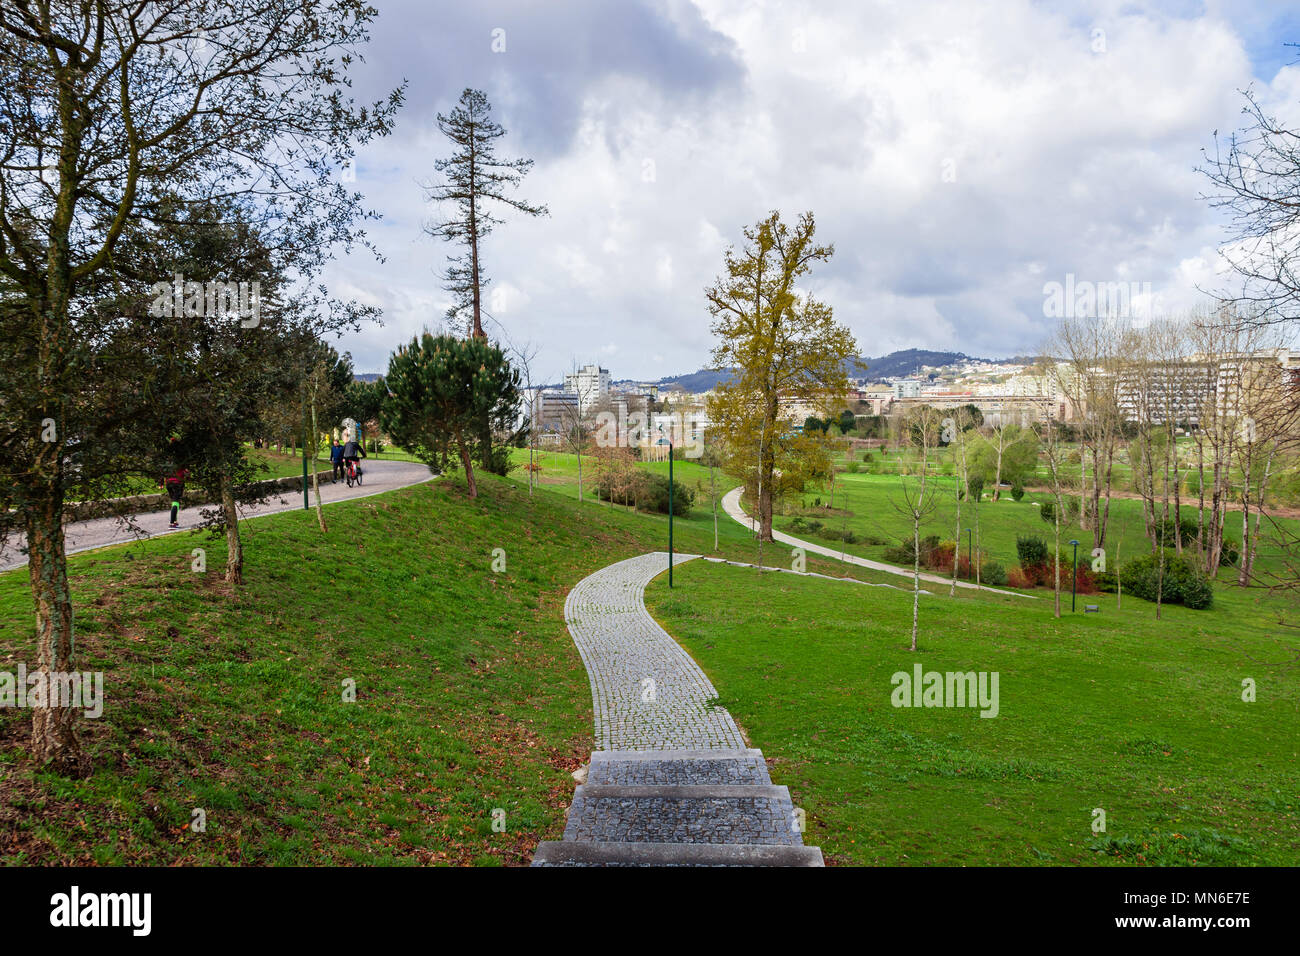 Empty cobblestone path, track, trail or pathway through trees and green grass lawn. Parque da Devesa Urban Park. Vila Nova de Famalicao, Portugal - Stock Image